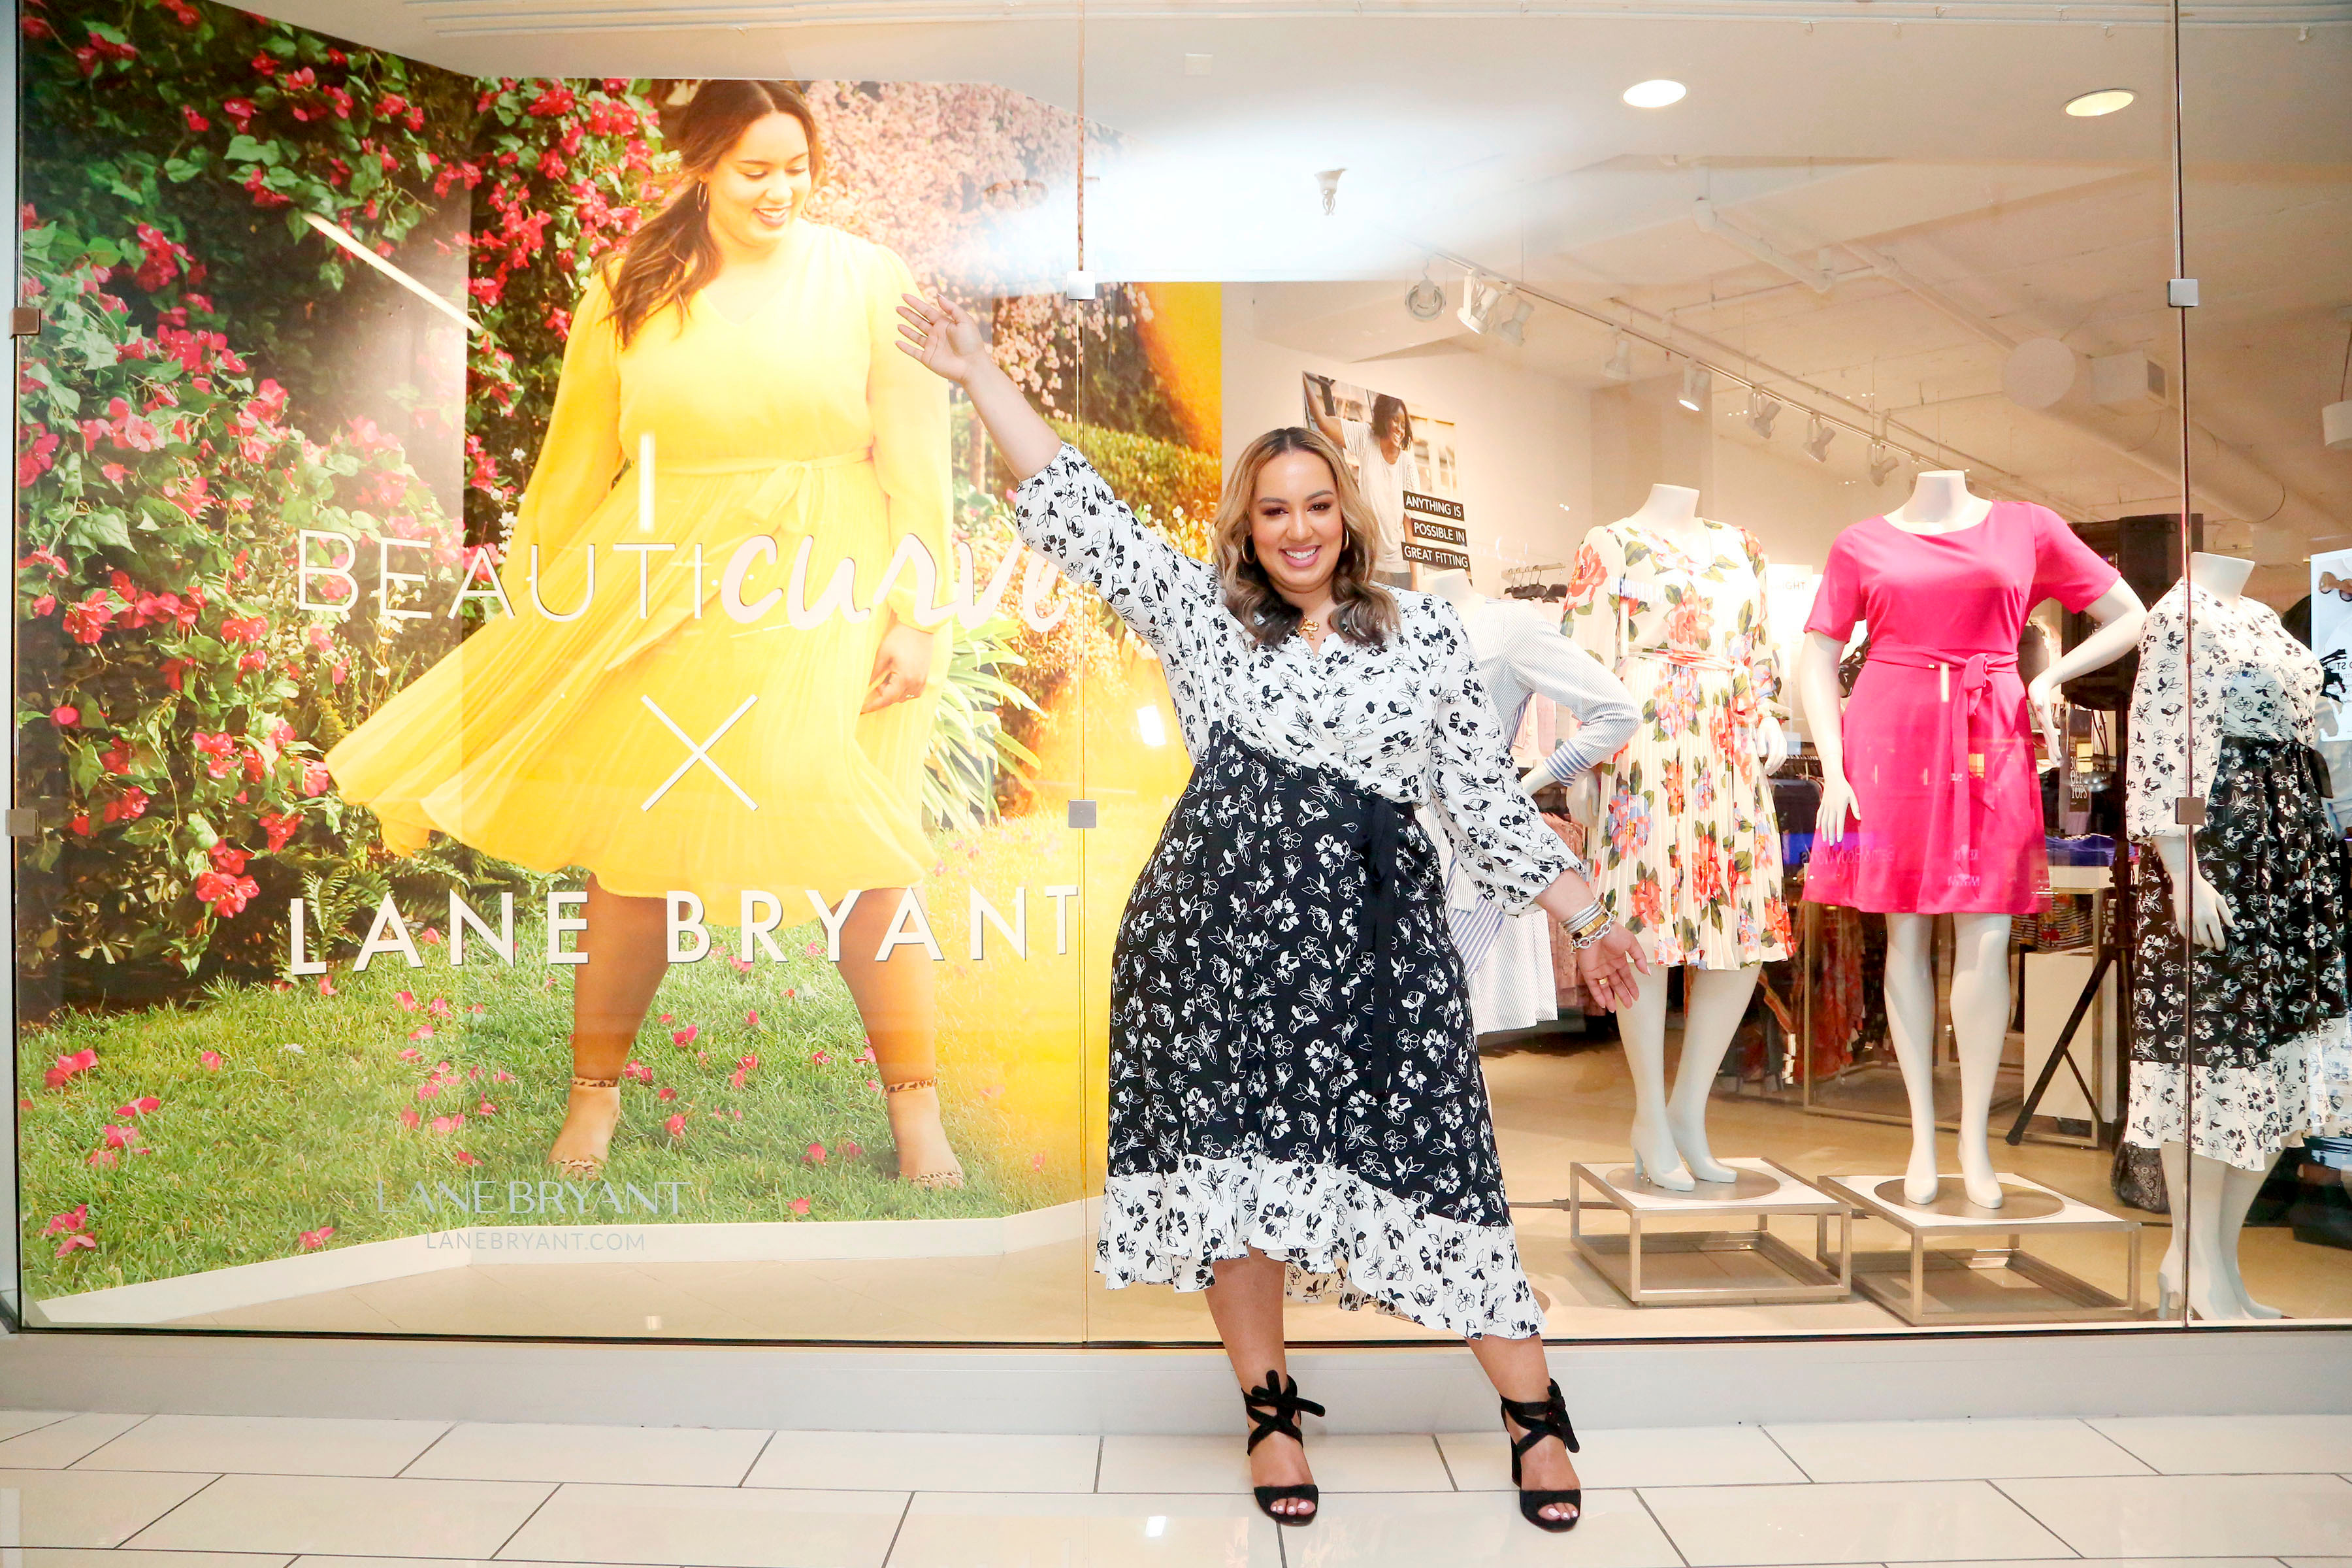 Rochelle Johnson and Lane Bryant debut the Beauticurve x Lane Bryant collection at a Preview Event, in Culver City, CalifBeauticurve x Lane Bryant Preview Event With Rochelle Johnson, Culver City, USA - 18 Mar 2019